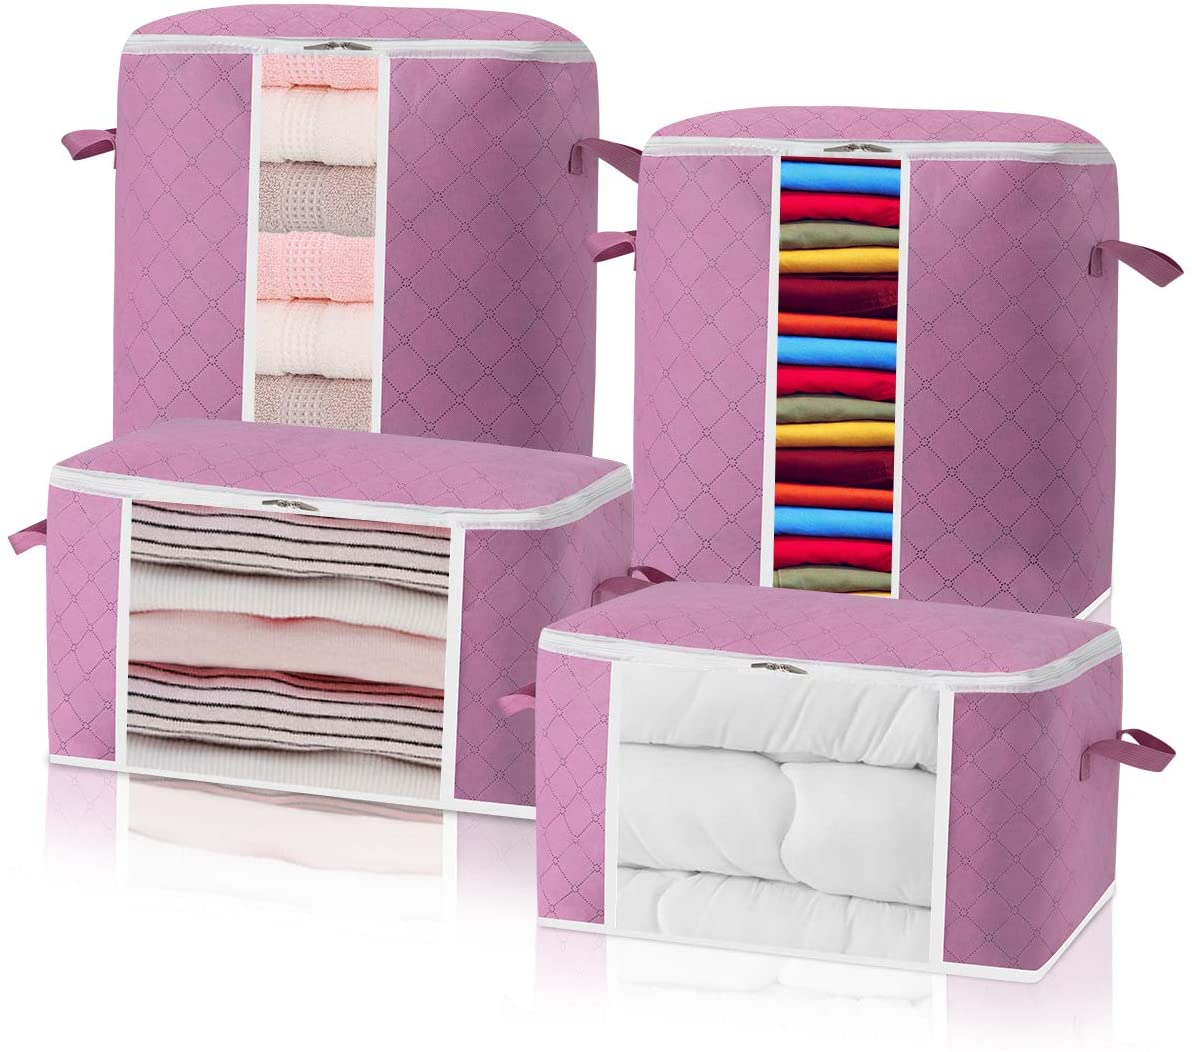 4 PACK Foldable Clothes Storage Bags Large Capacity Closet Organizer with Sturdy Handles and Zippers for Bedding,Clothes,Comforters, Blankets Clear Window (Pink)